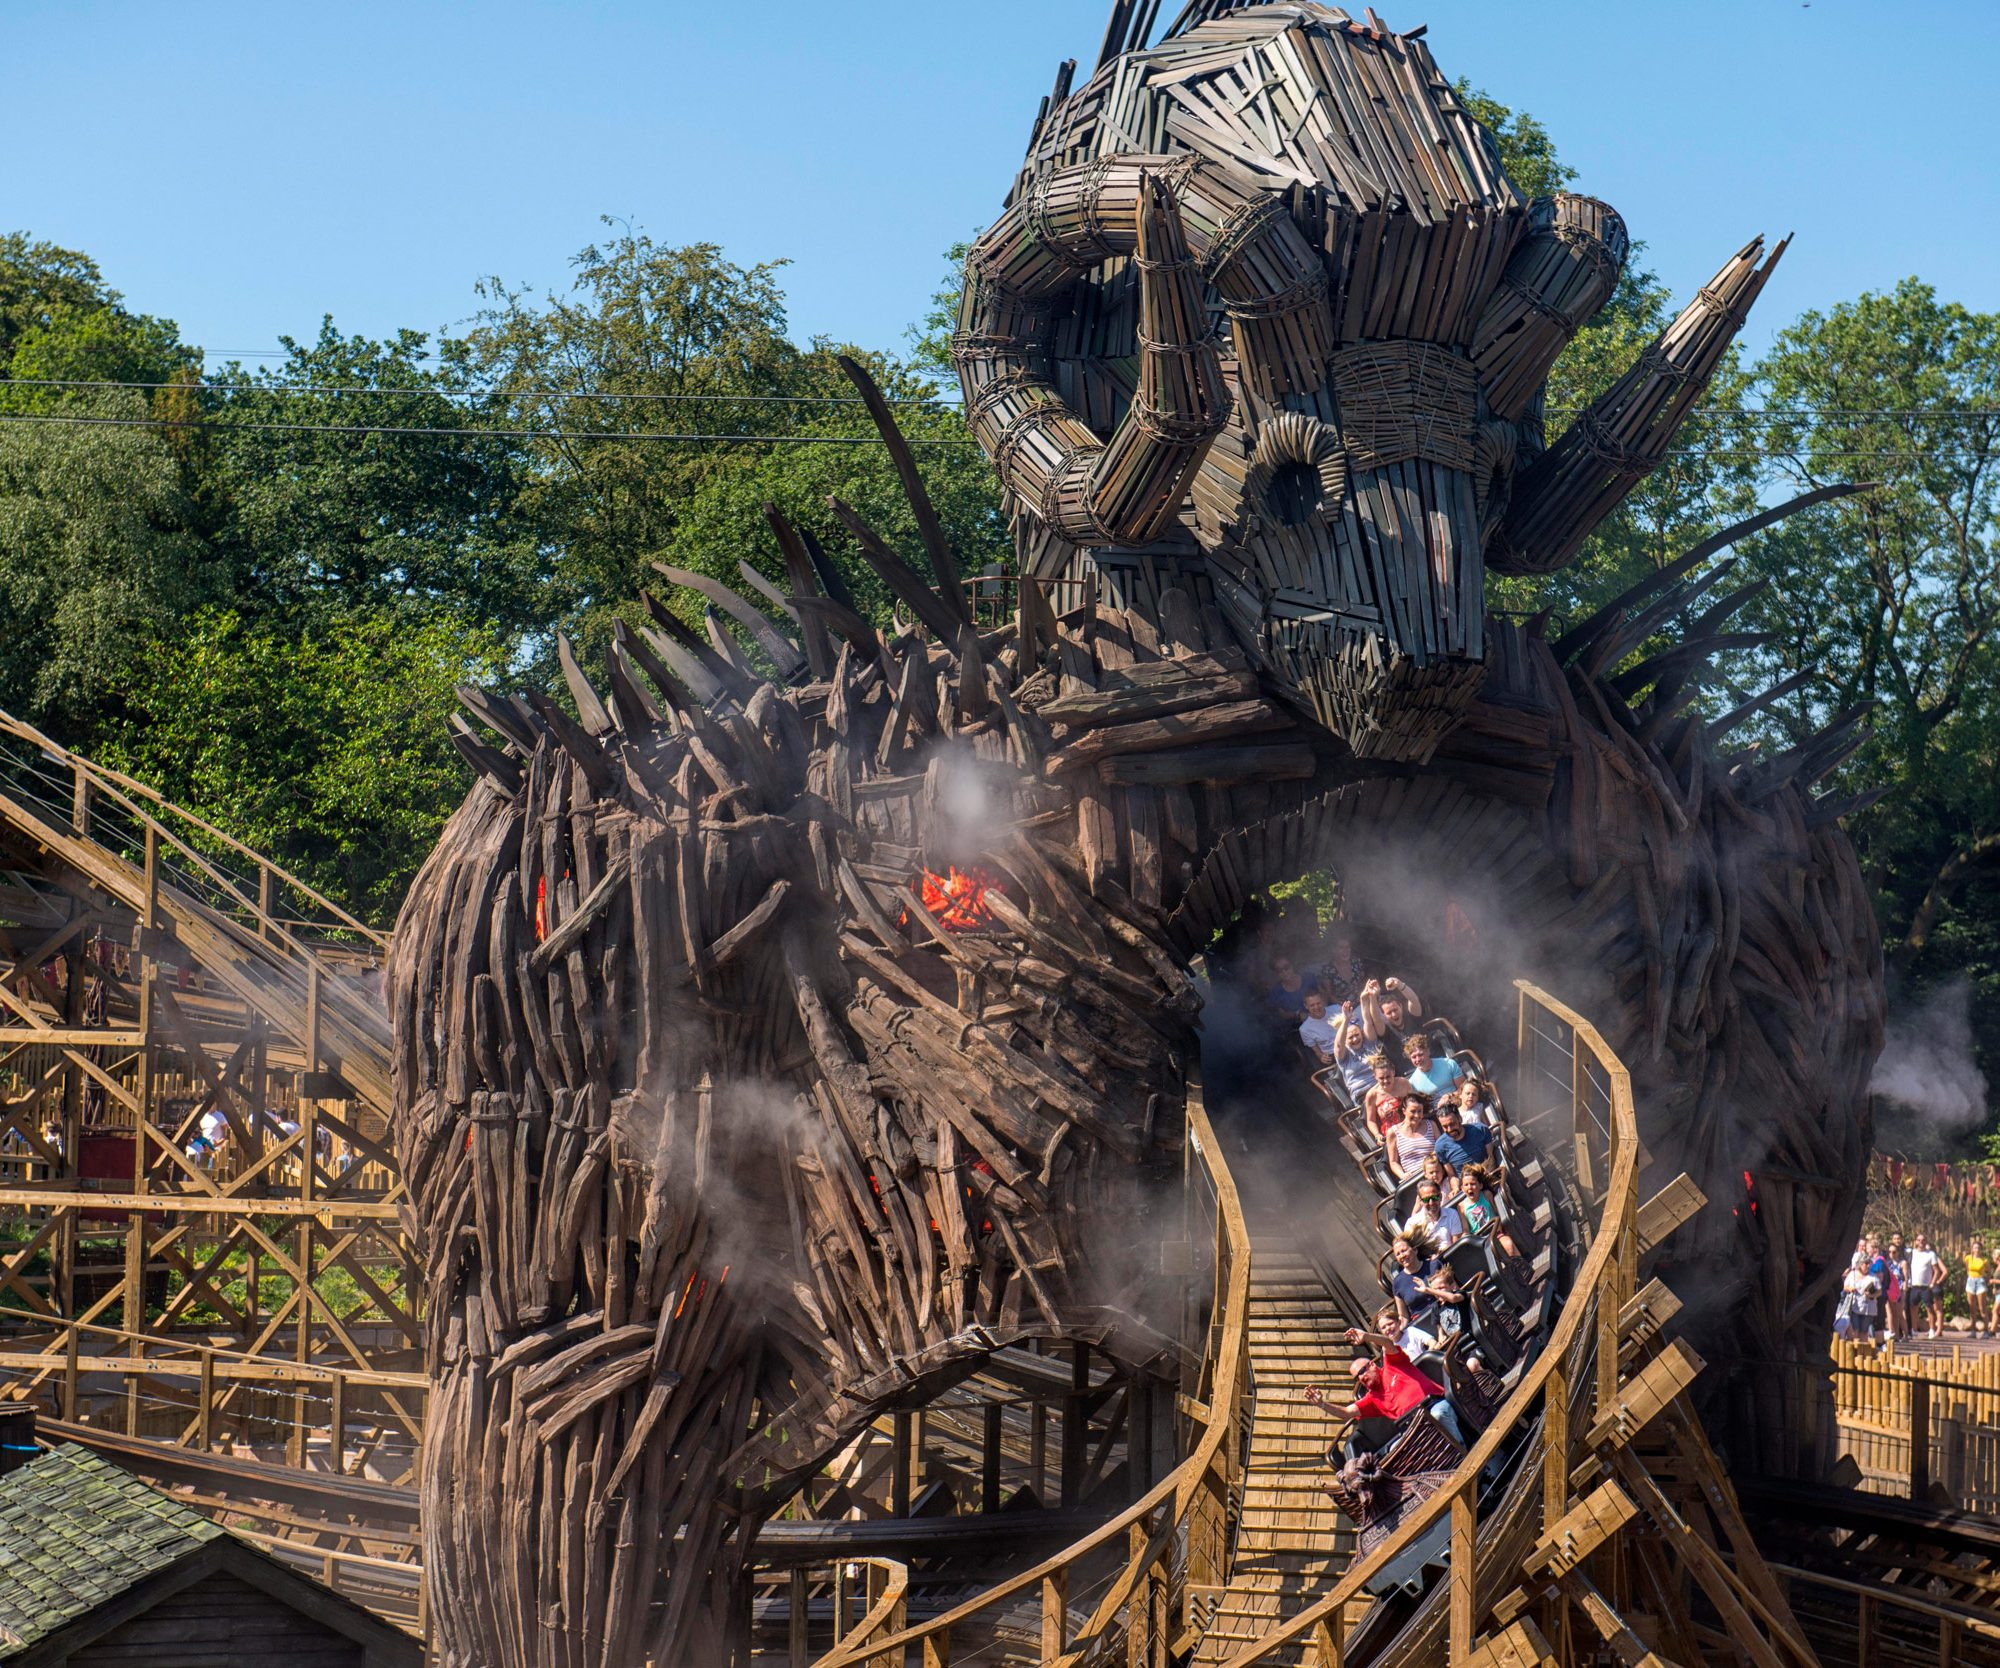 People scream as they ride on a wooden rollercoaster at a theme park.